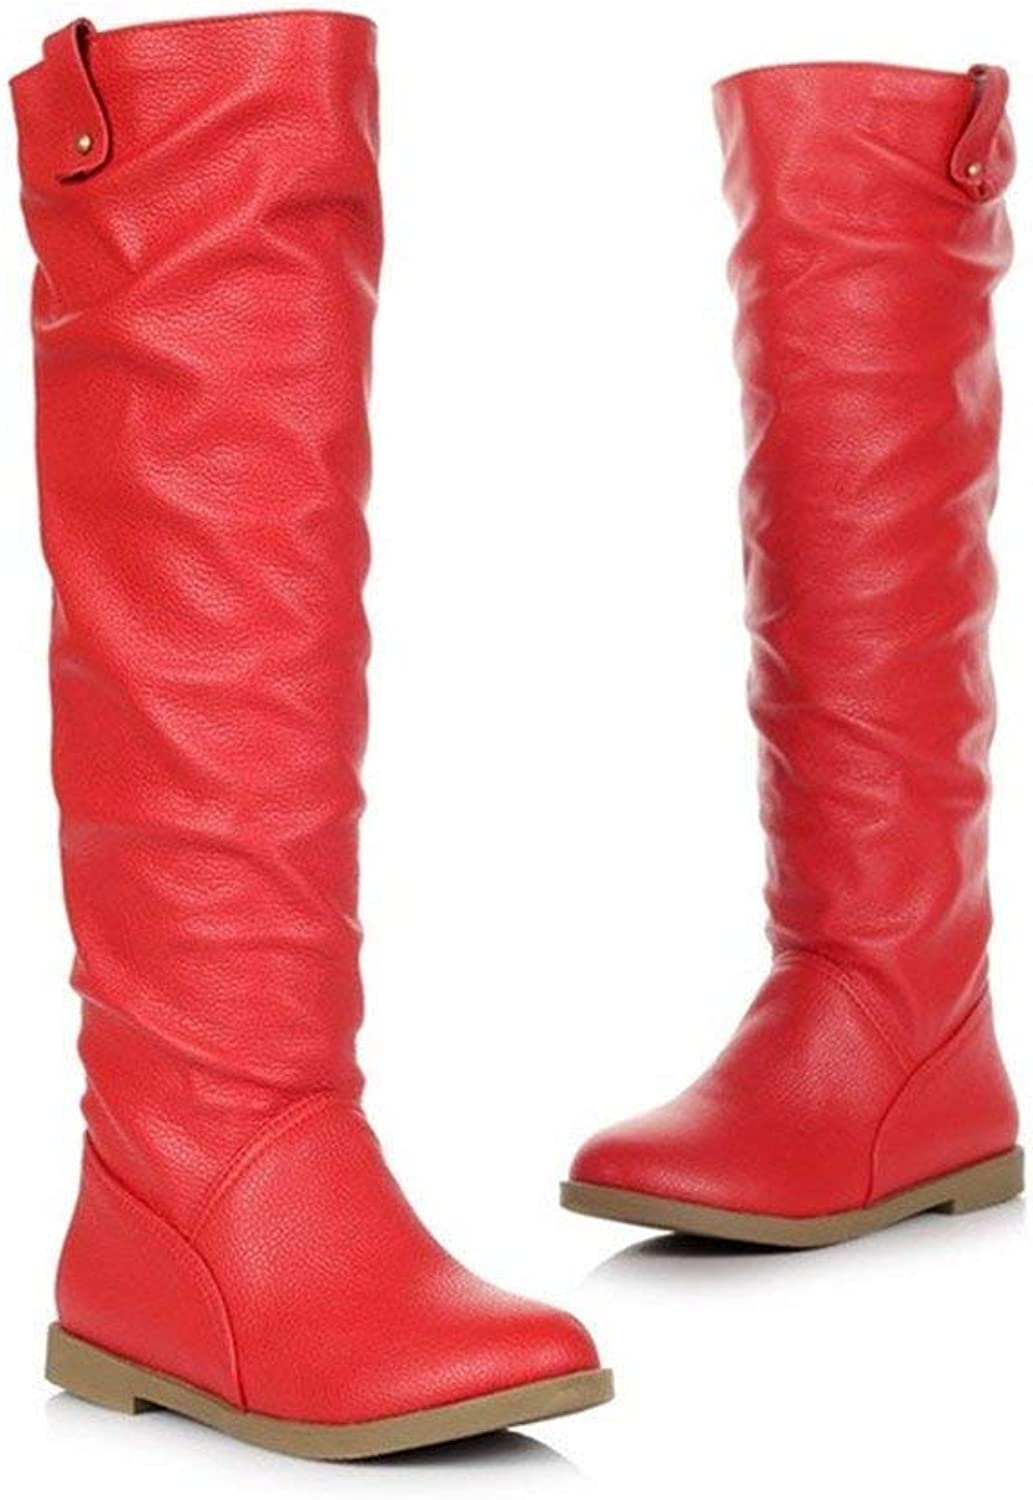 Women's Knee High Round Toe Slouch Shaft Low Heel Faux Leather Flat Boots